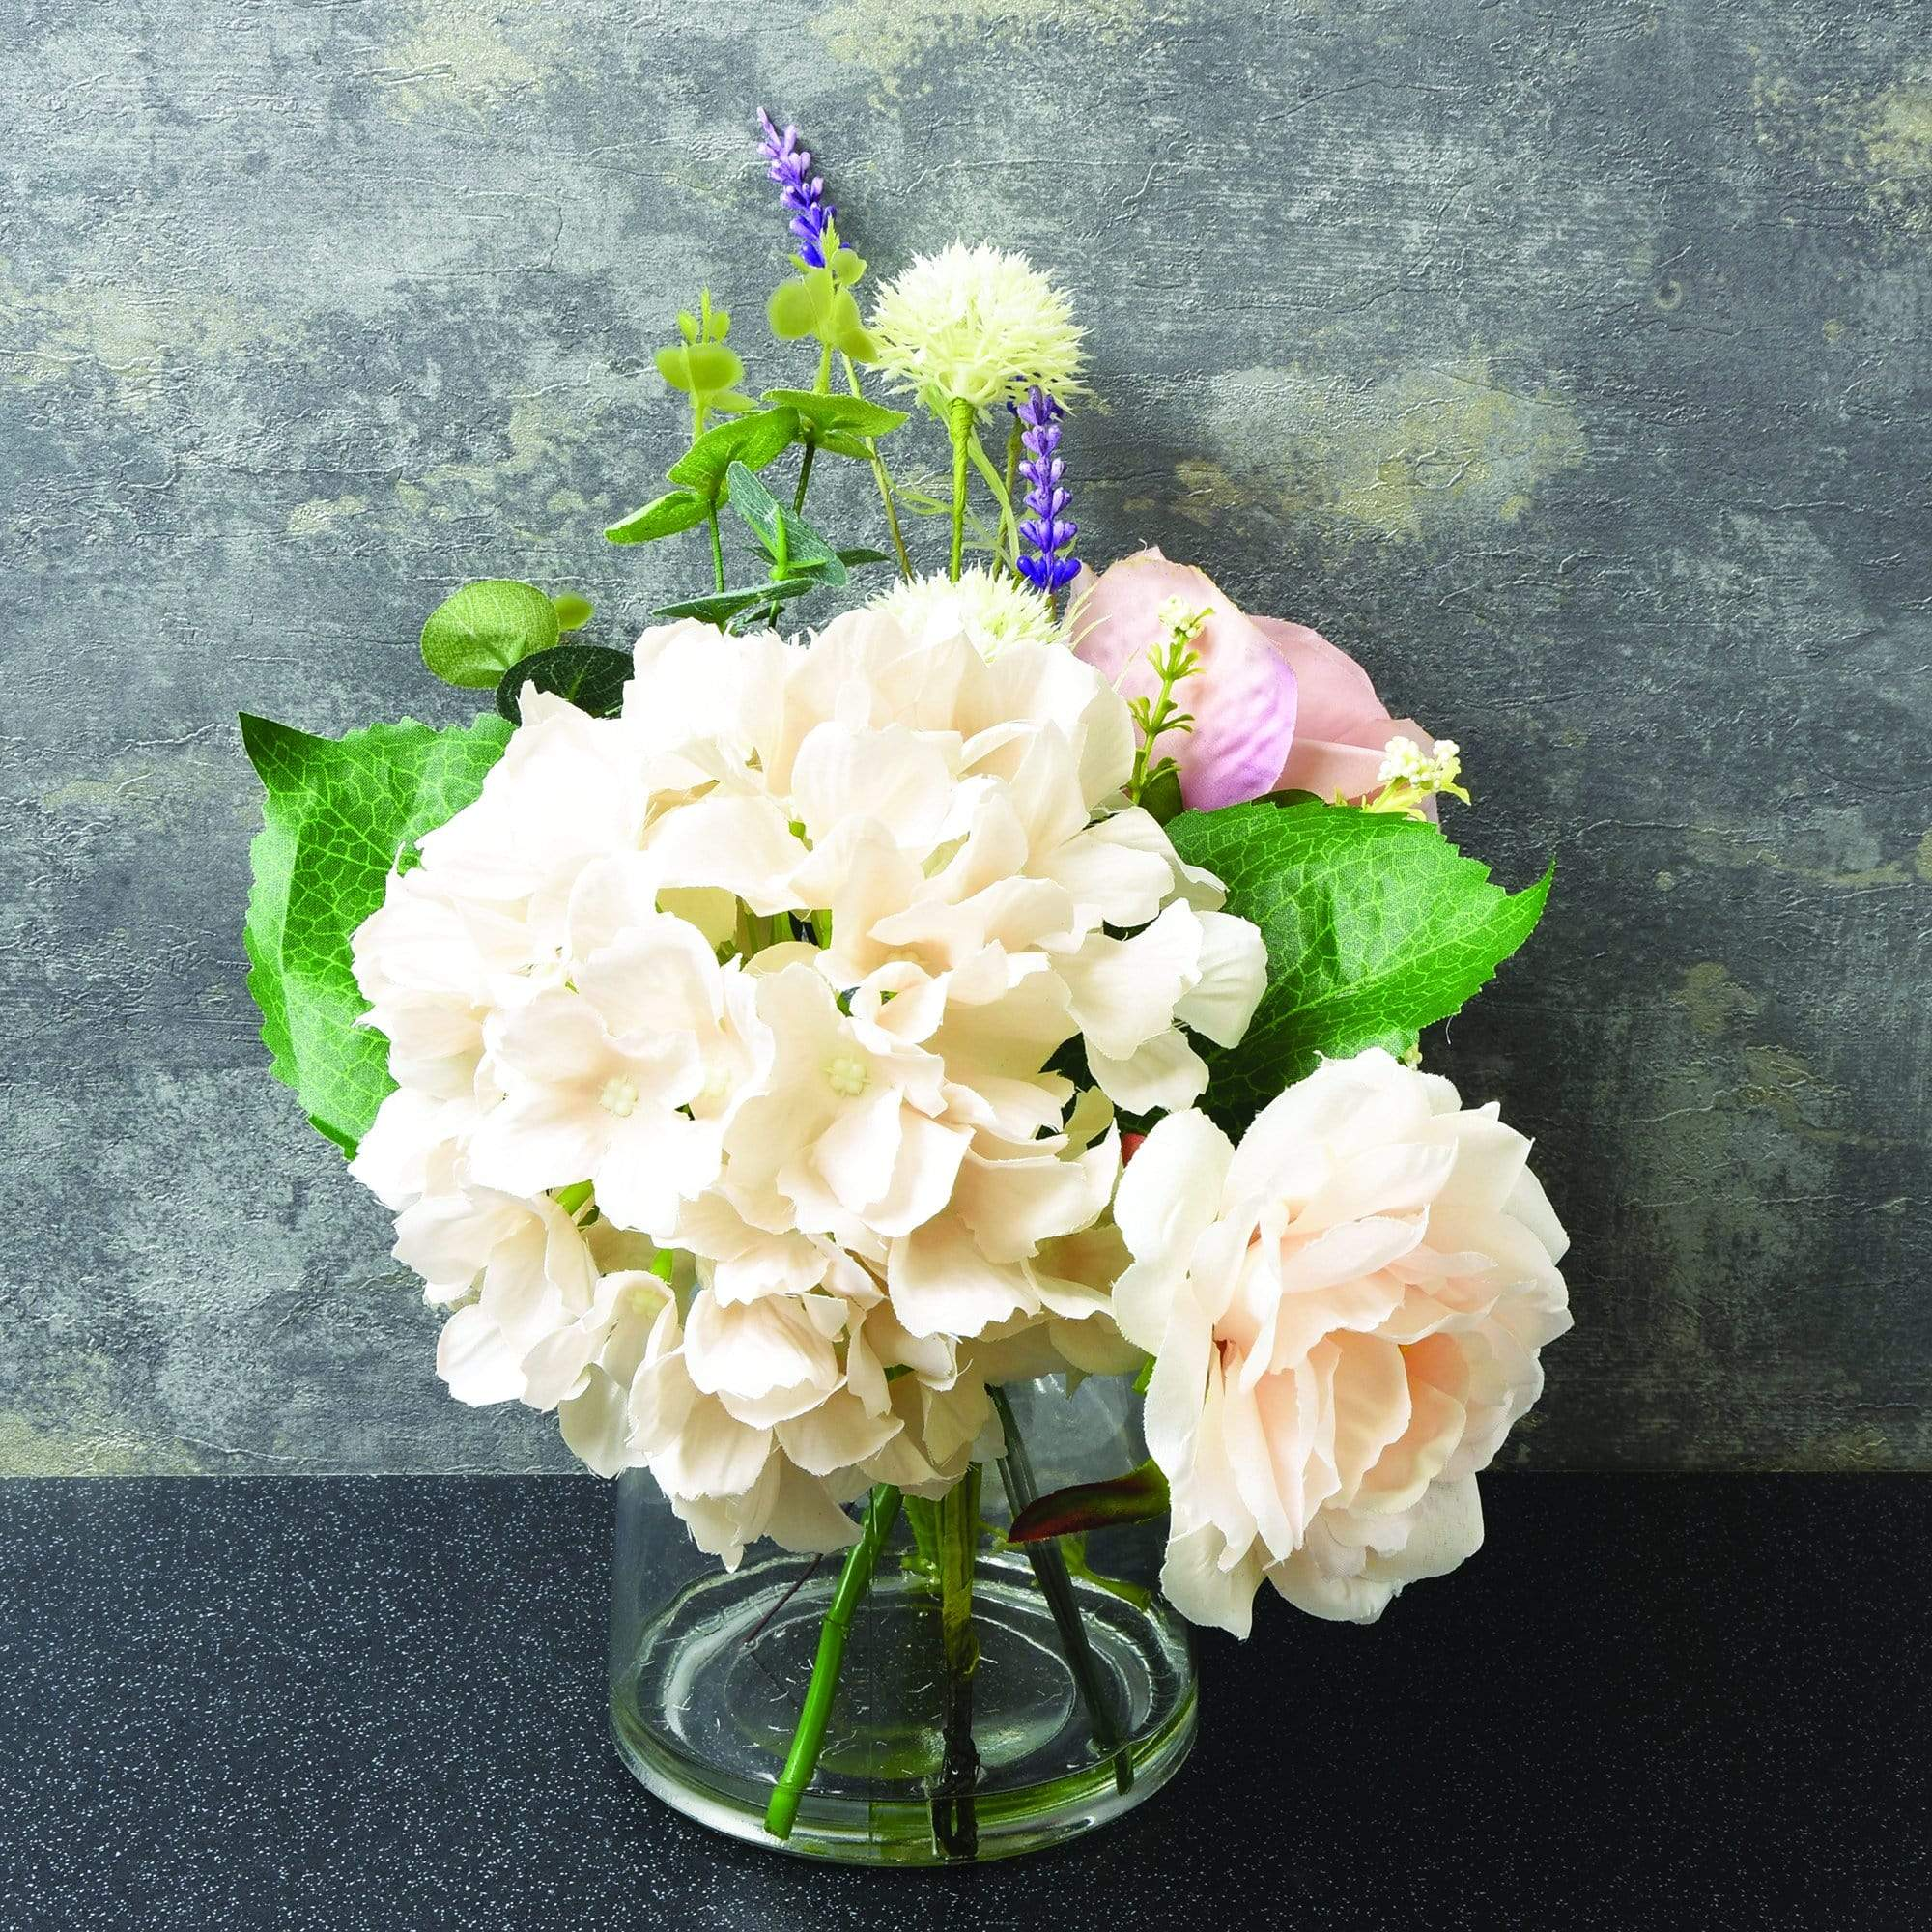 Candlelight Home Artificial Plants & Flowers The Flower Patch Roses & Hydrangea in Glass Vase Dusky Pink 25cm 1PK